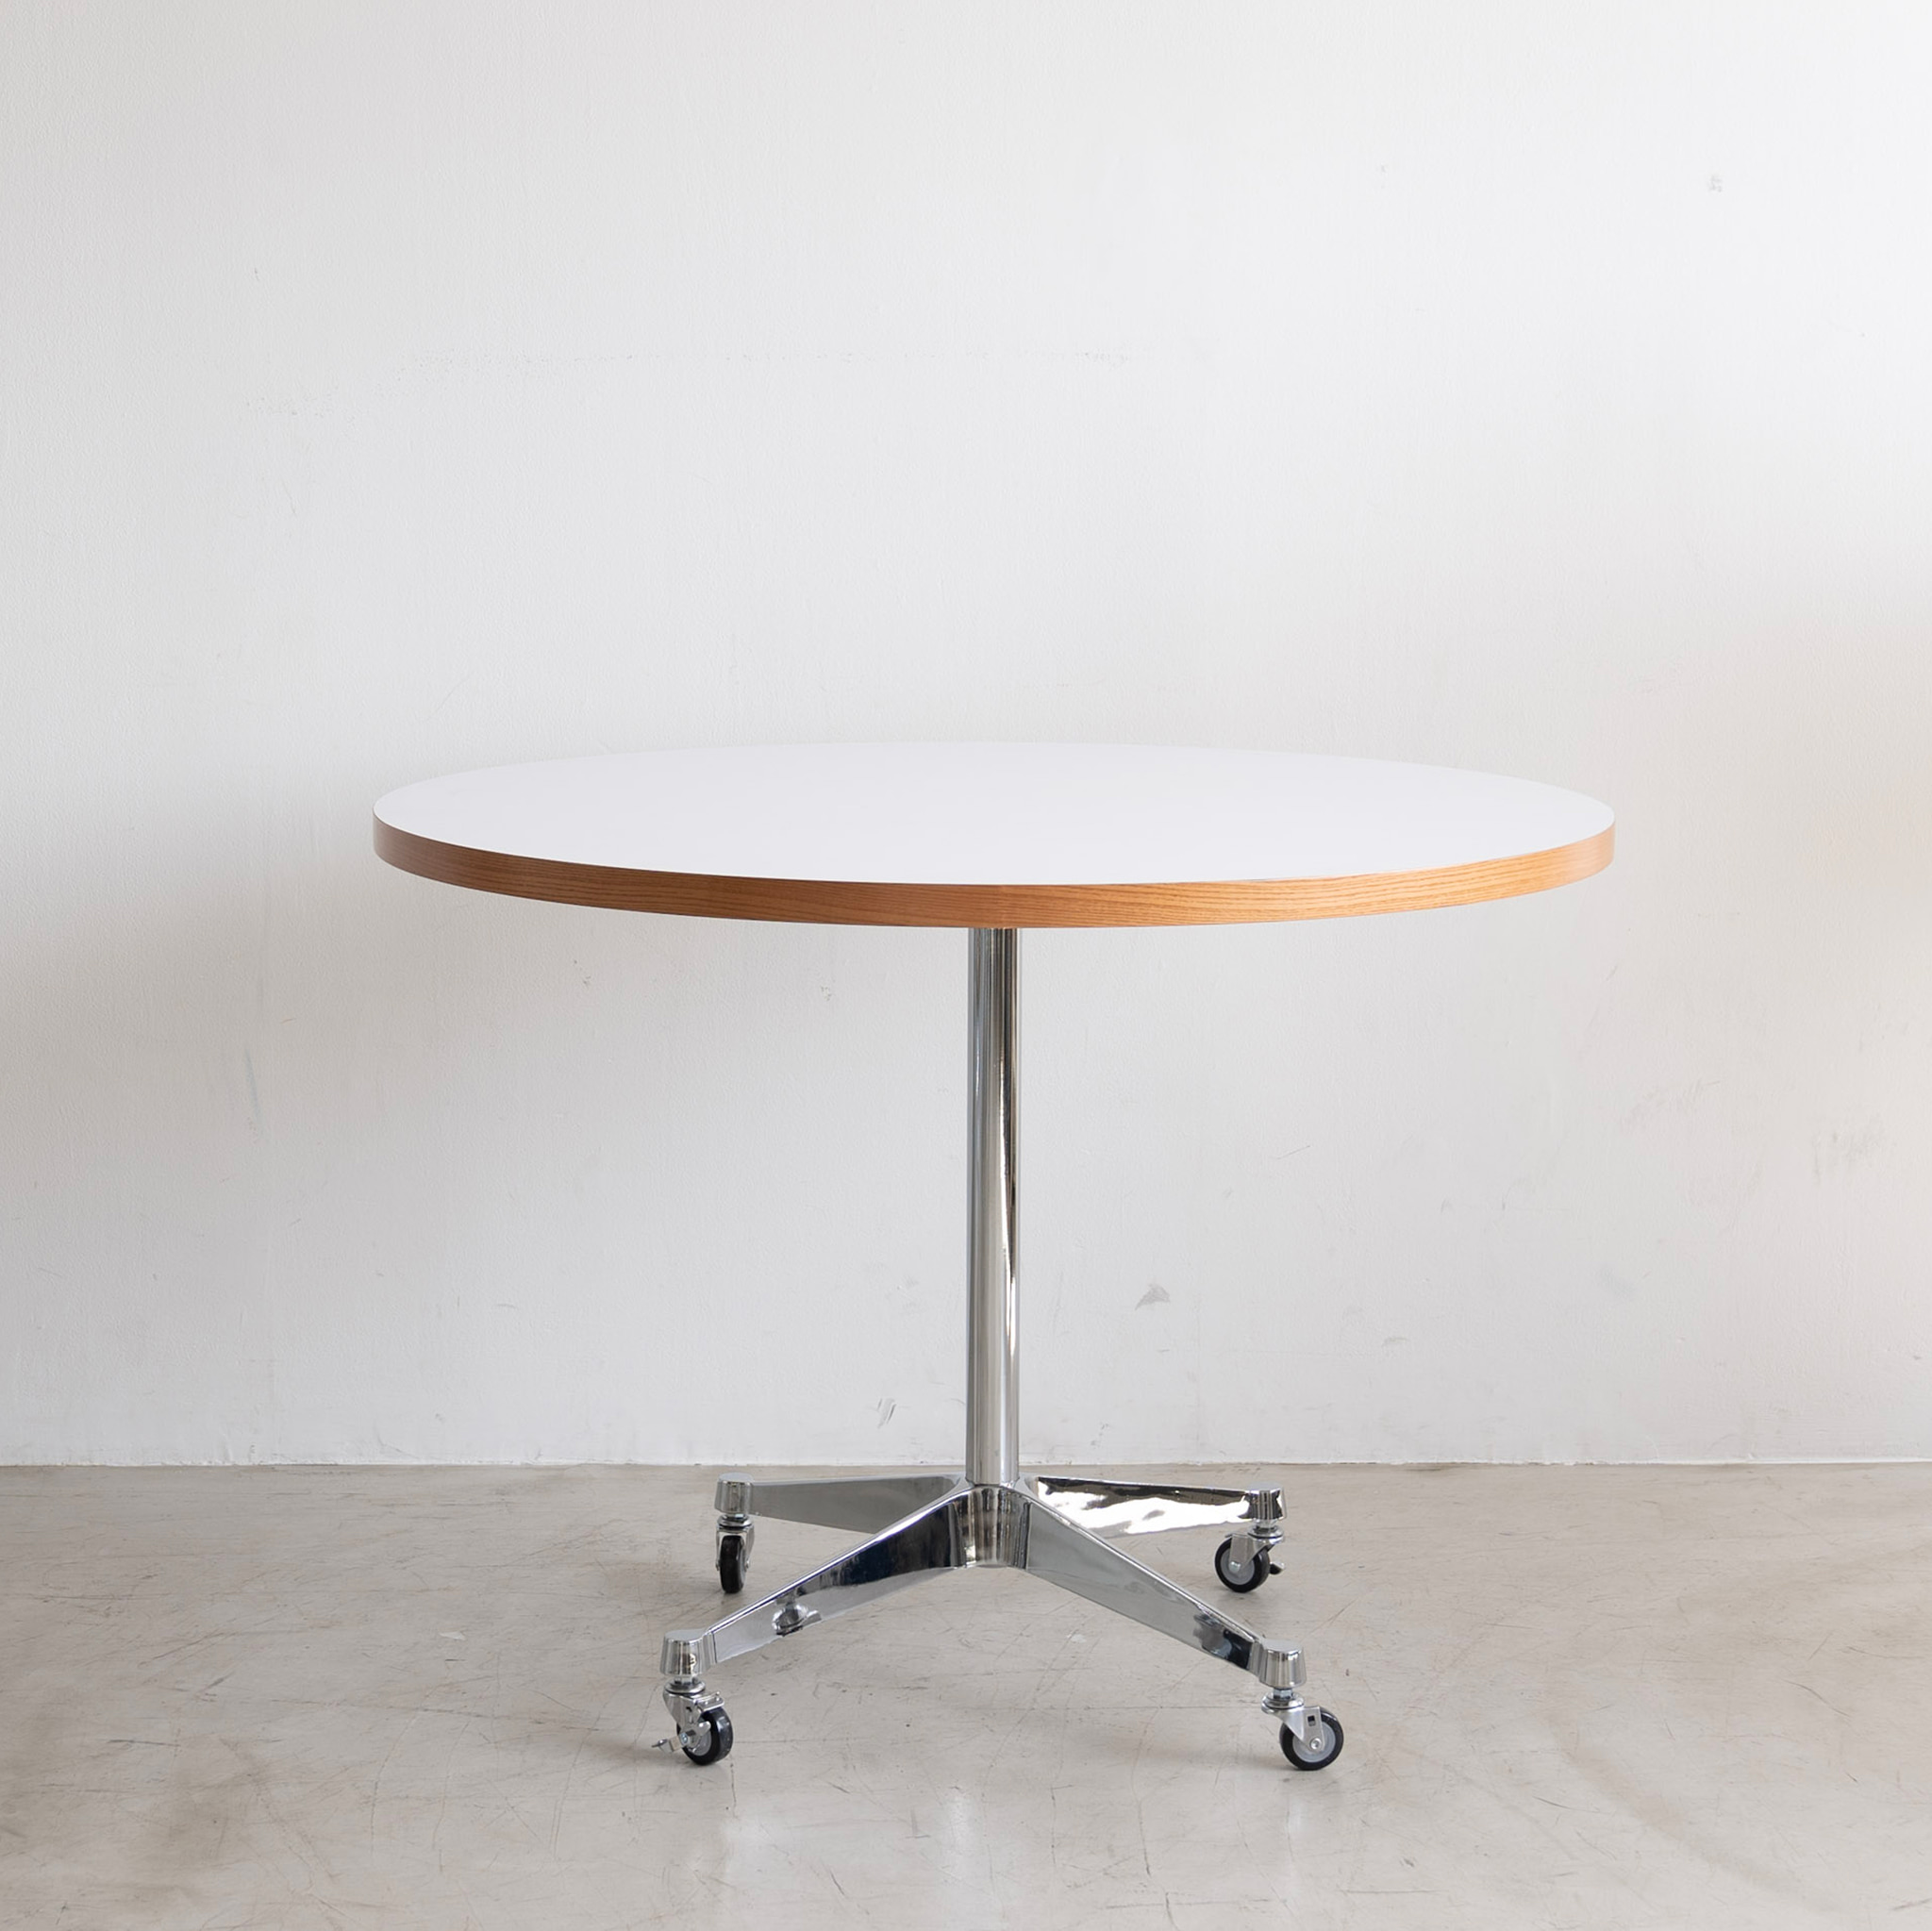 Herman Miller Contract Base Dining and work Table (model 650)